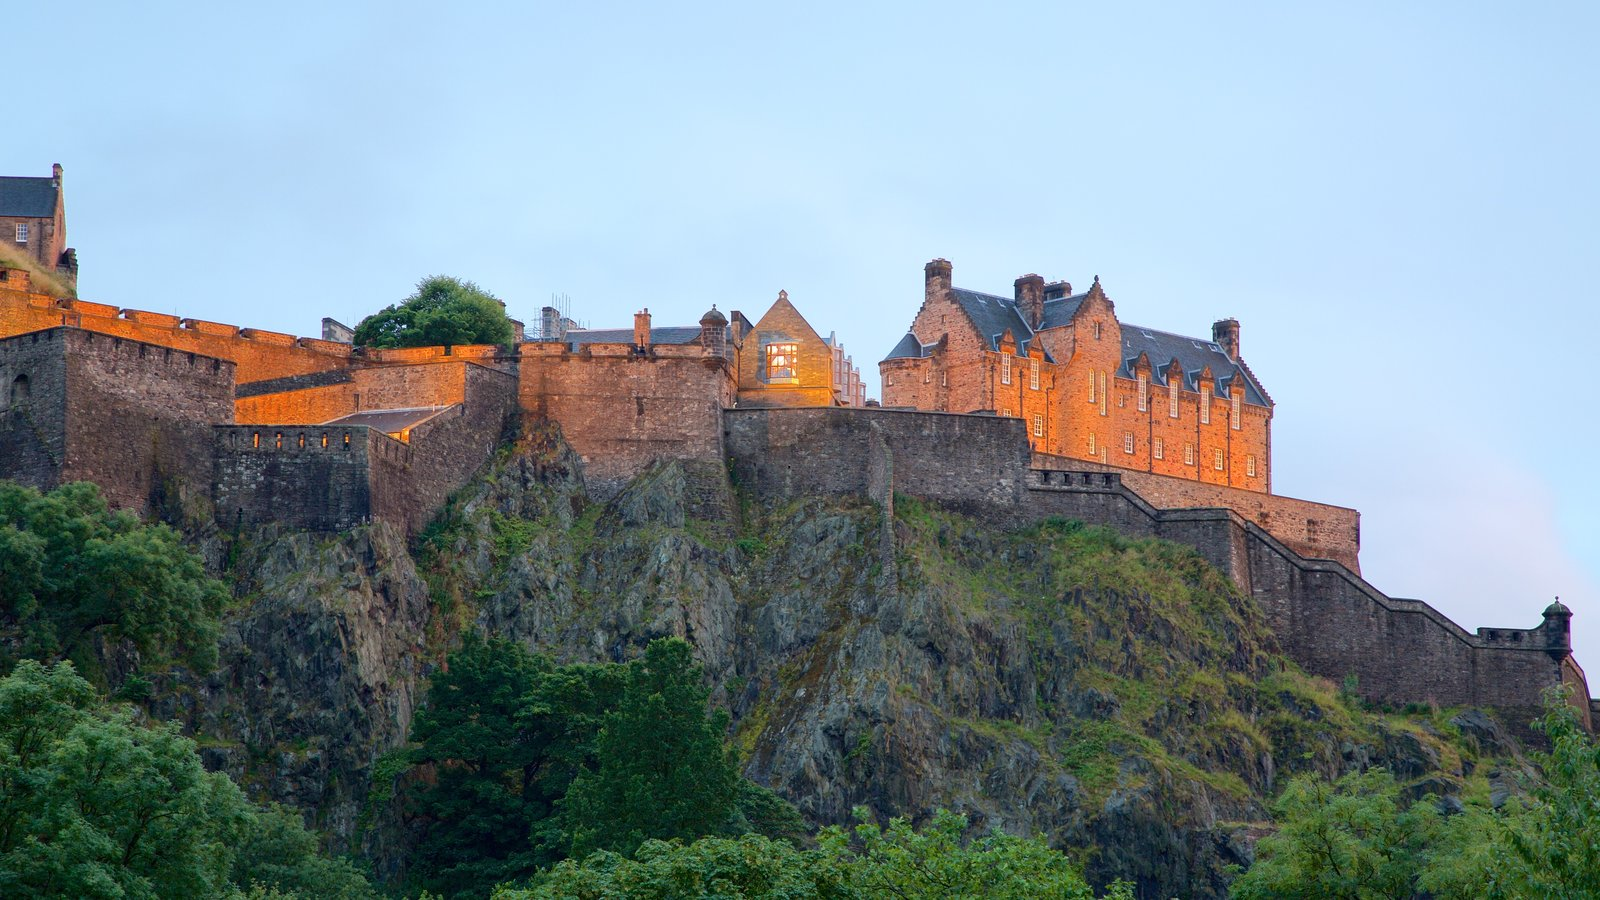 Edinburgh Castle which includes chateau or palace and heritage elements